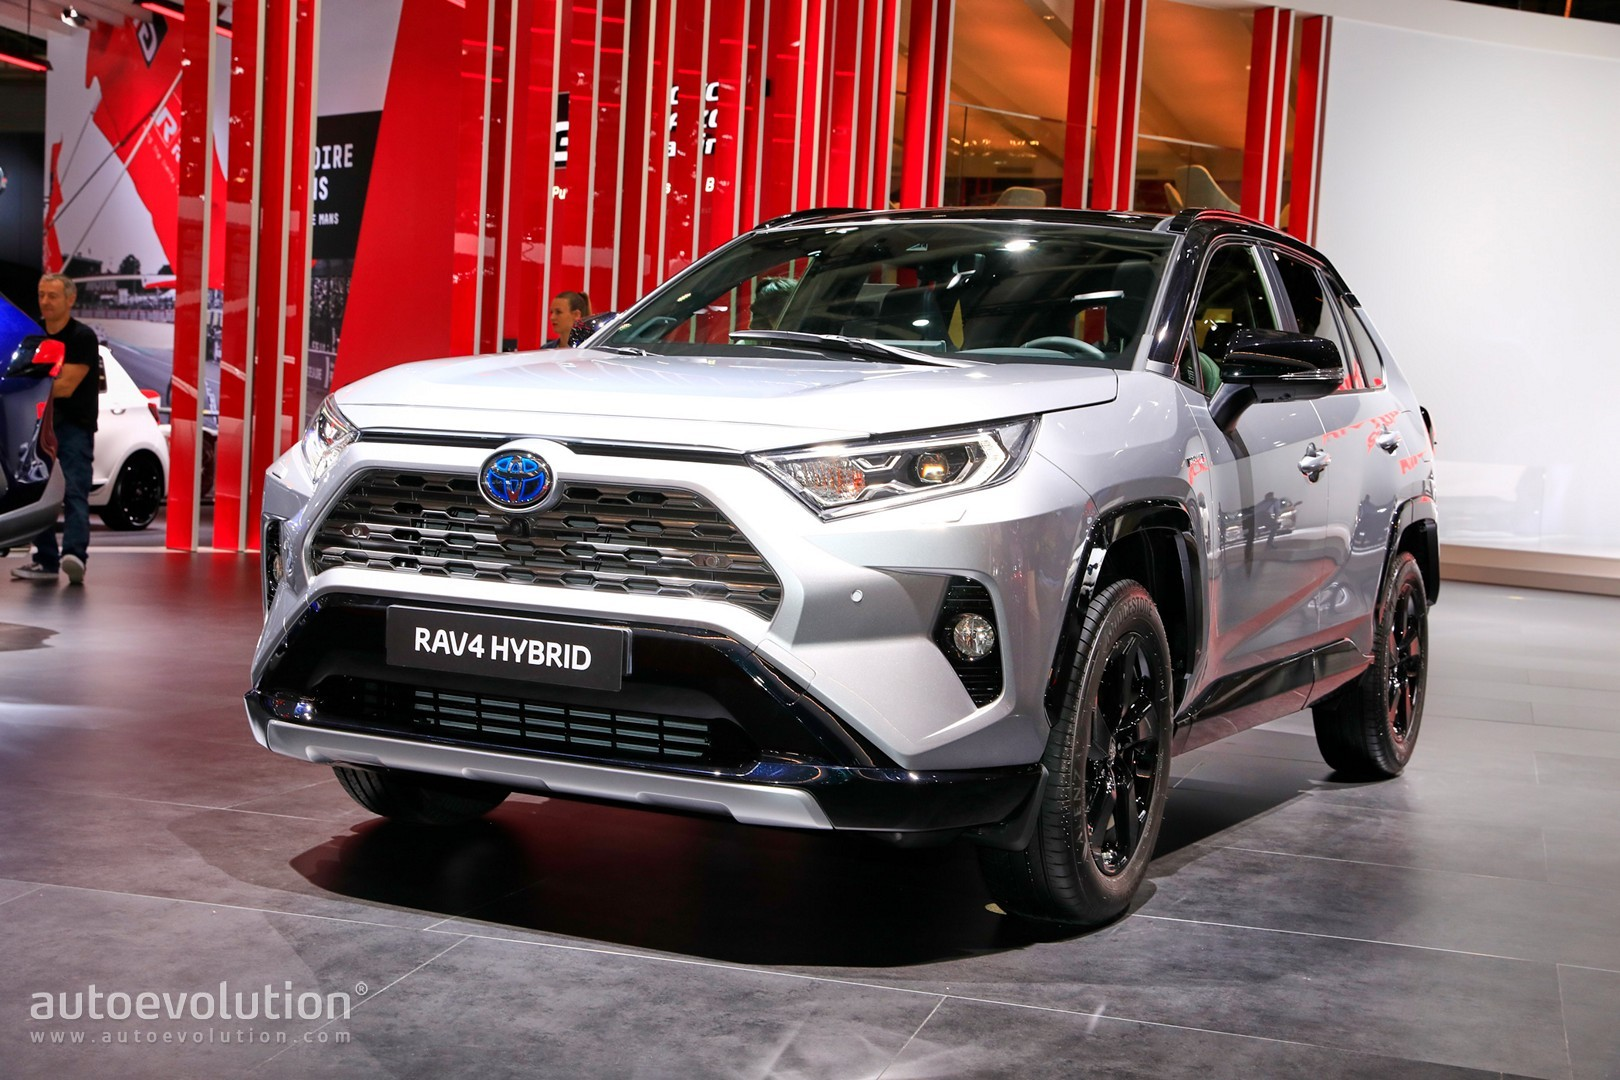 2019 toyota rav4 makes hybrid production debut in paris autoevolution. Black Bedroom Furniture Sets. Home Design Ideas